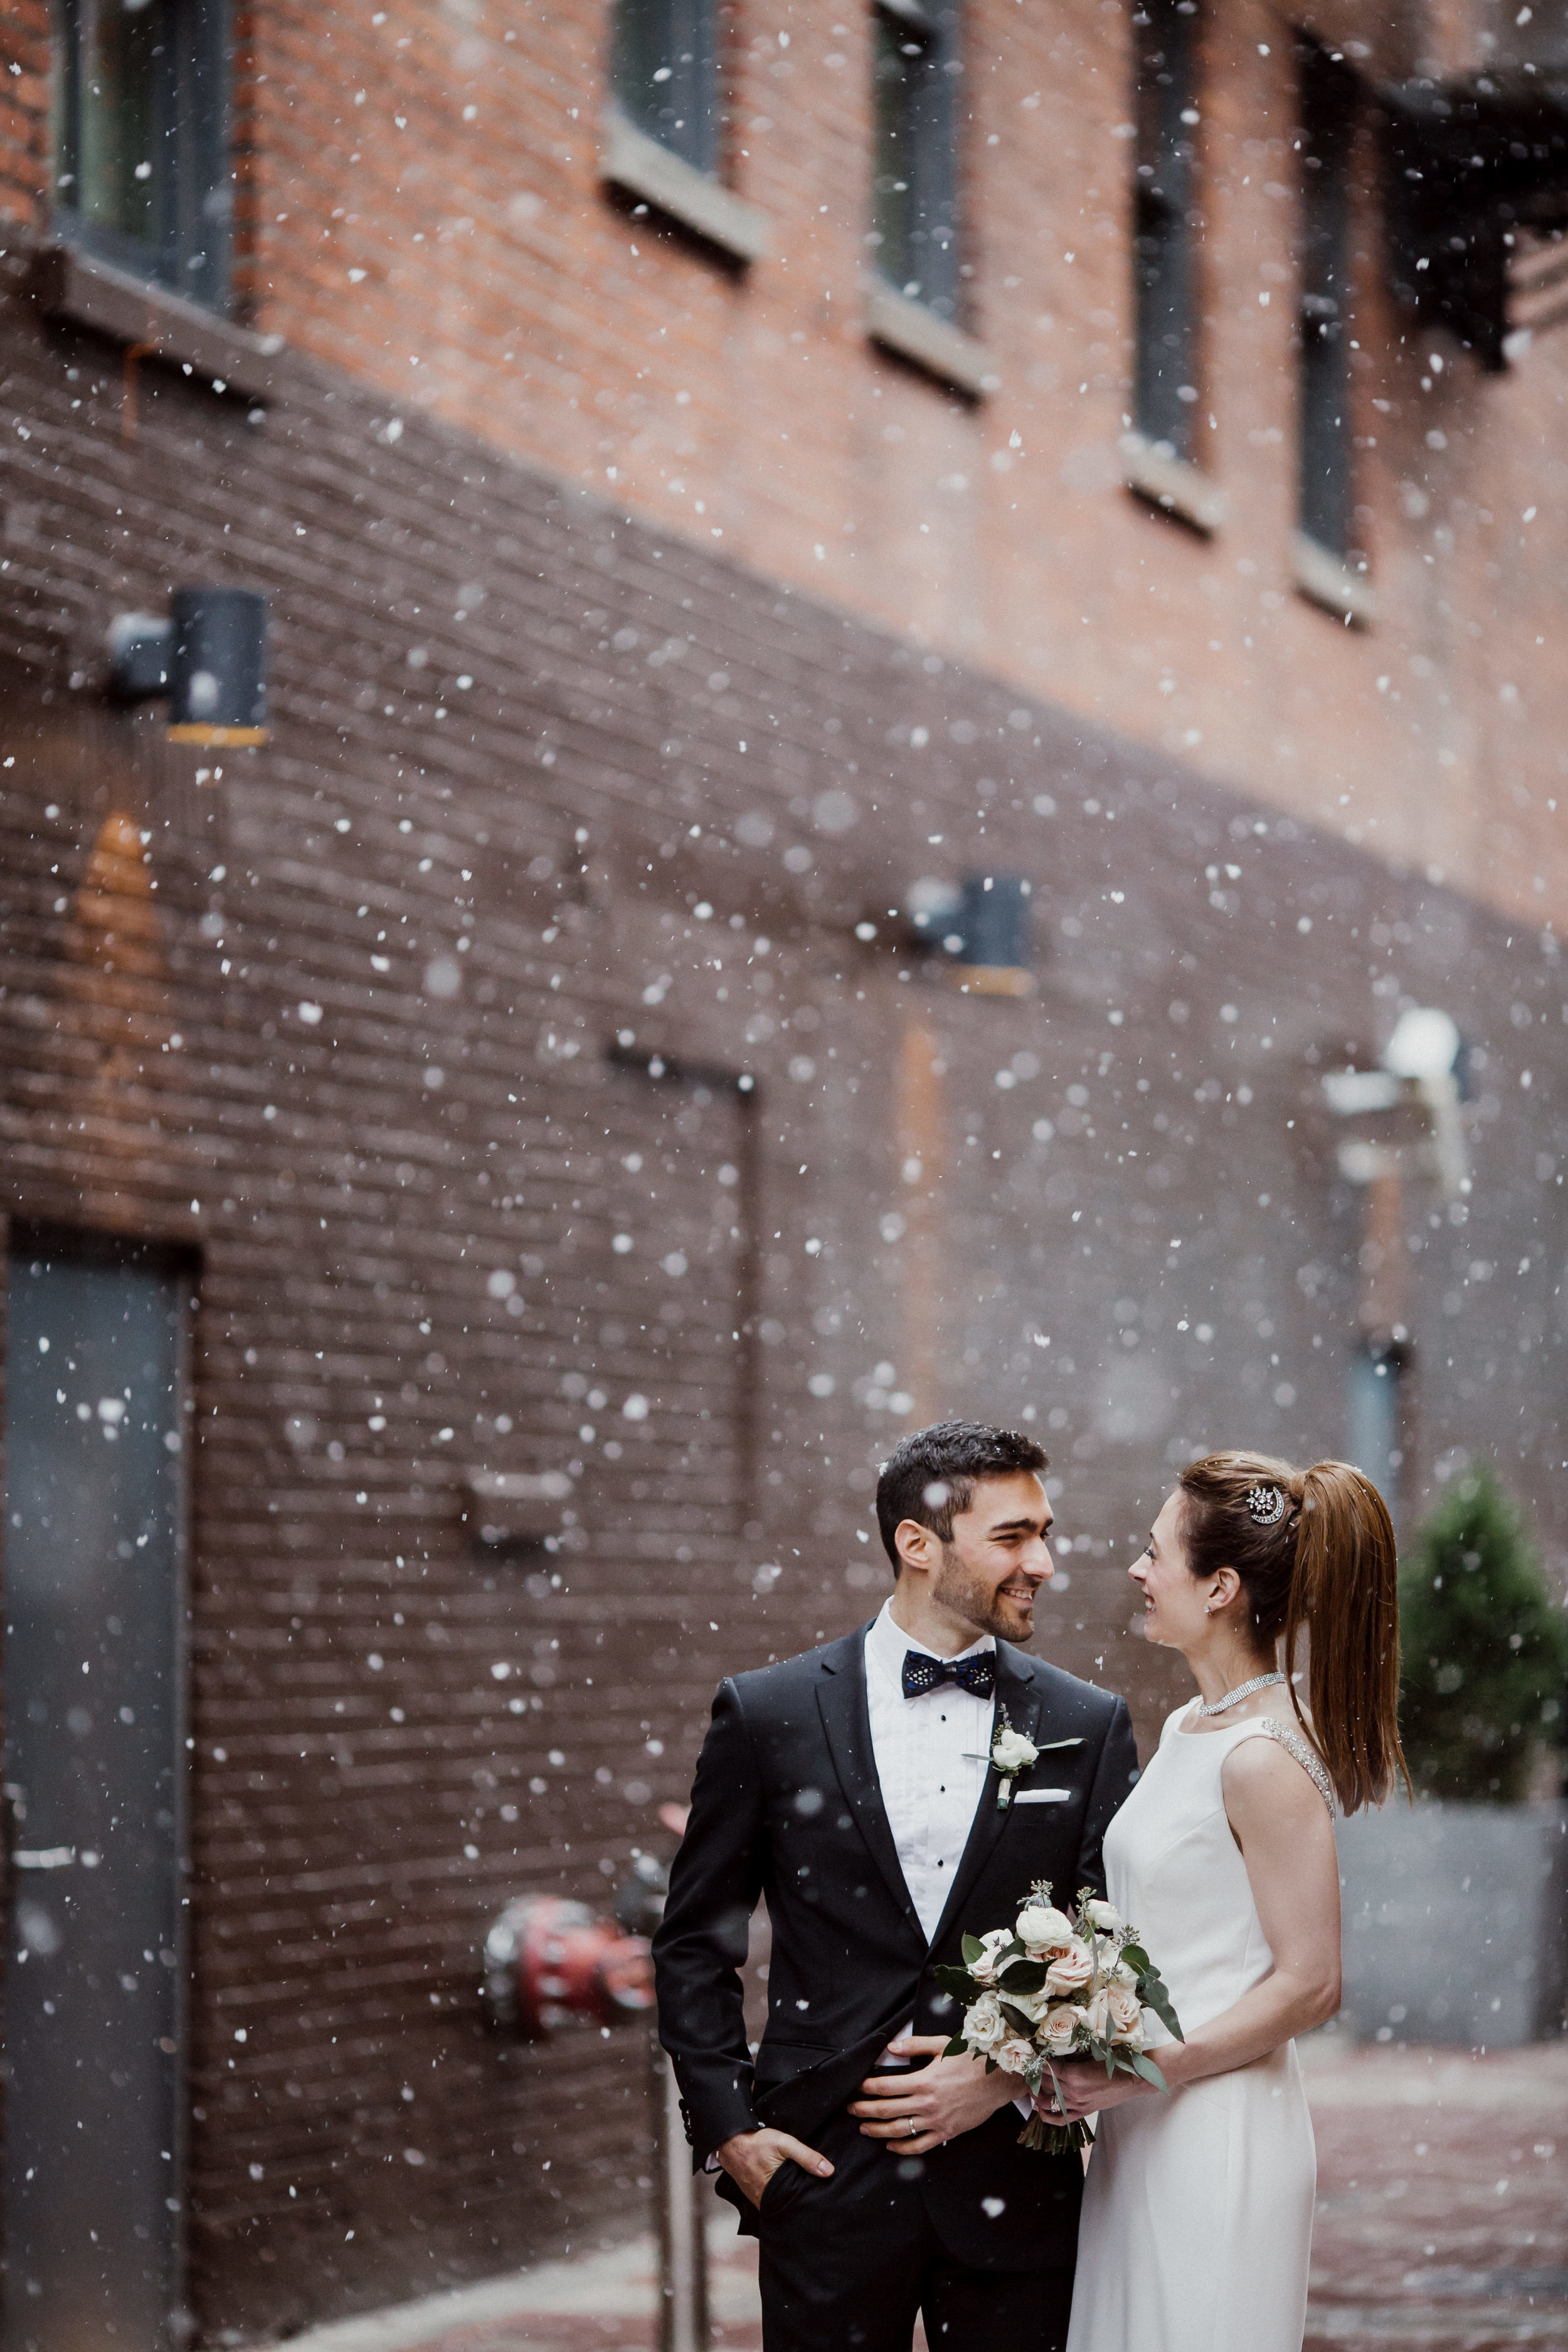 thecarrsphotography_emily_andy_wedding_0370.jpg